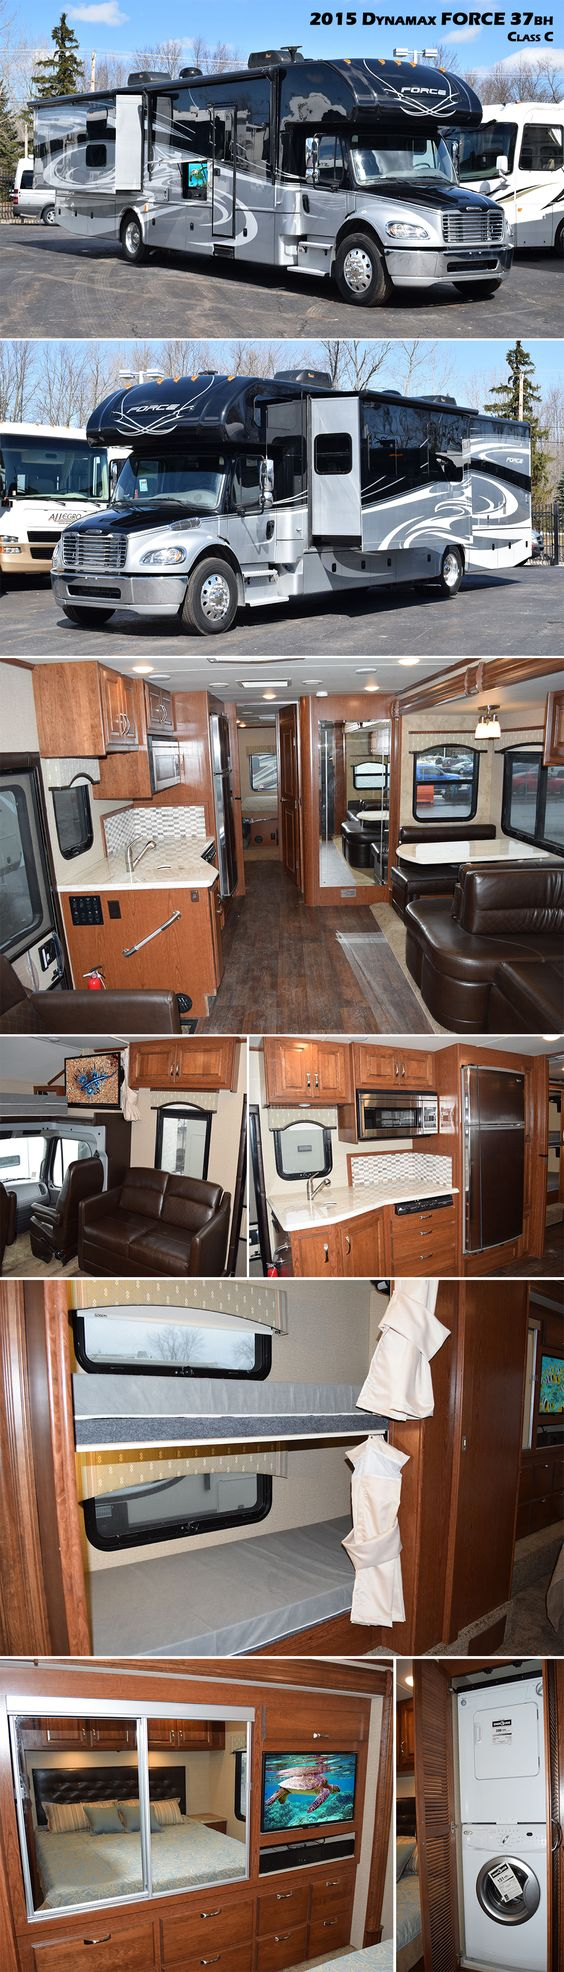 Small class c rv models quotes - The 25 Best Class C Motorhomes Ideas On Pinterest Class C Campers Class C Rv Ideas And Motorhome